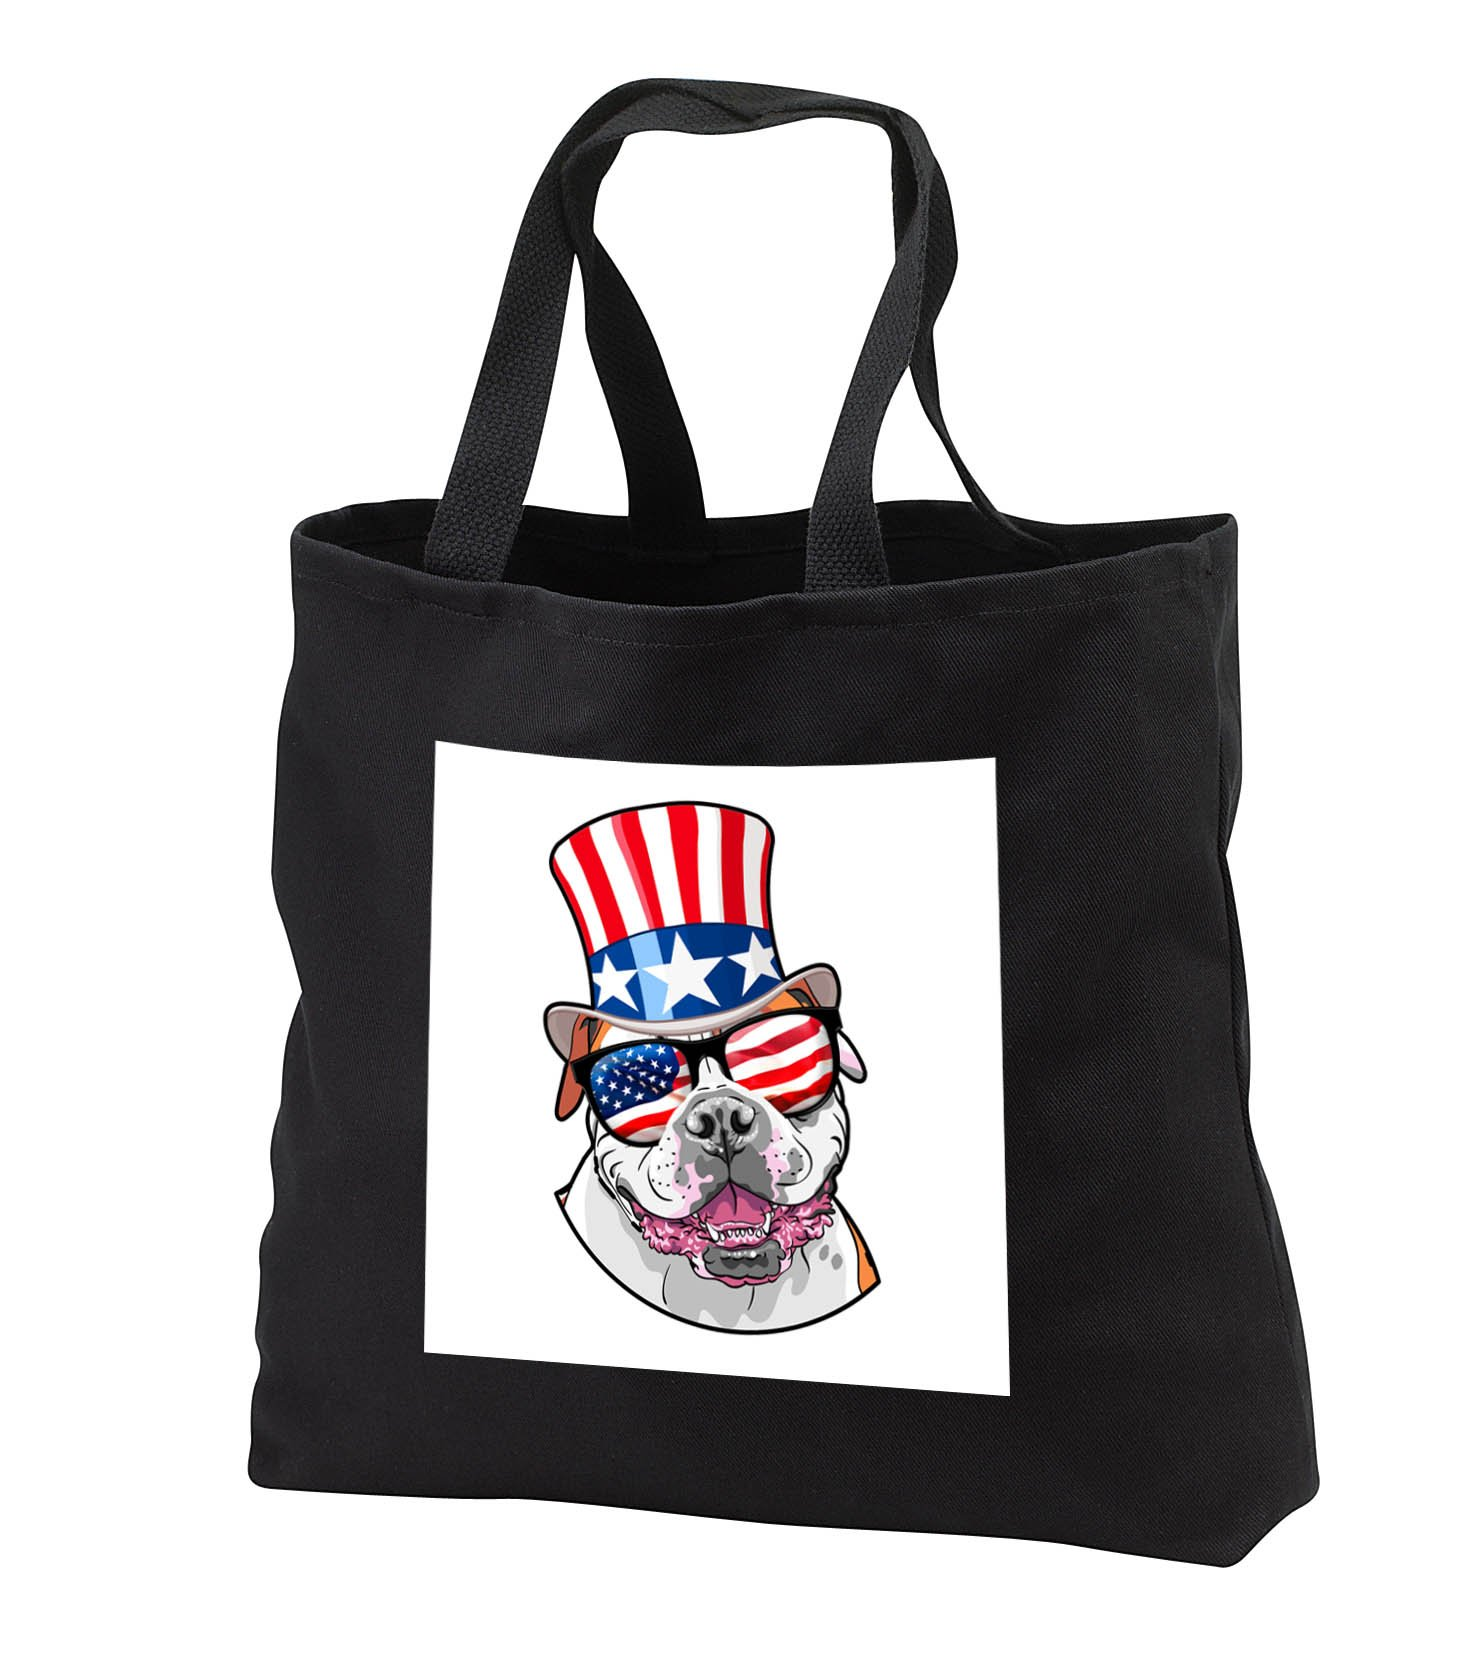 Patriotic American Dogs - American Bulldog With American Flag Sunglasses and Top hat - Tote Bags - Black Tote Bag 14w x 14h x 3d (tb_282709_1)